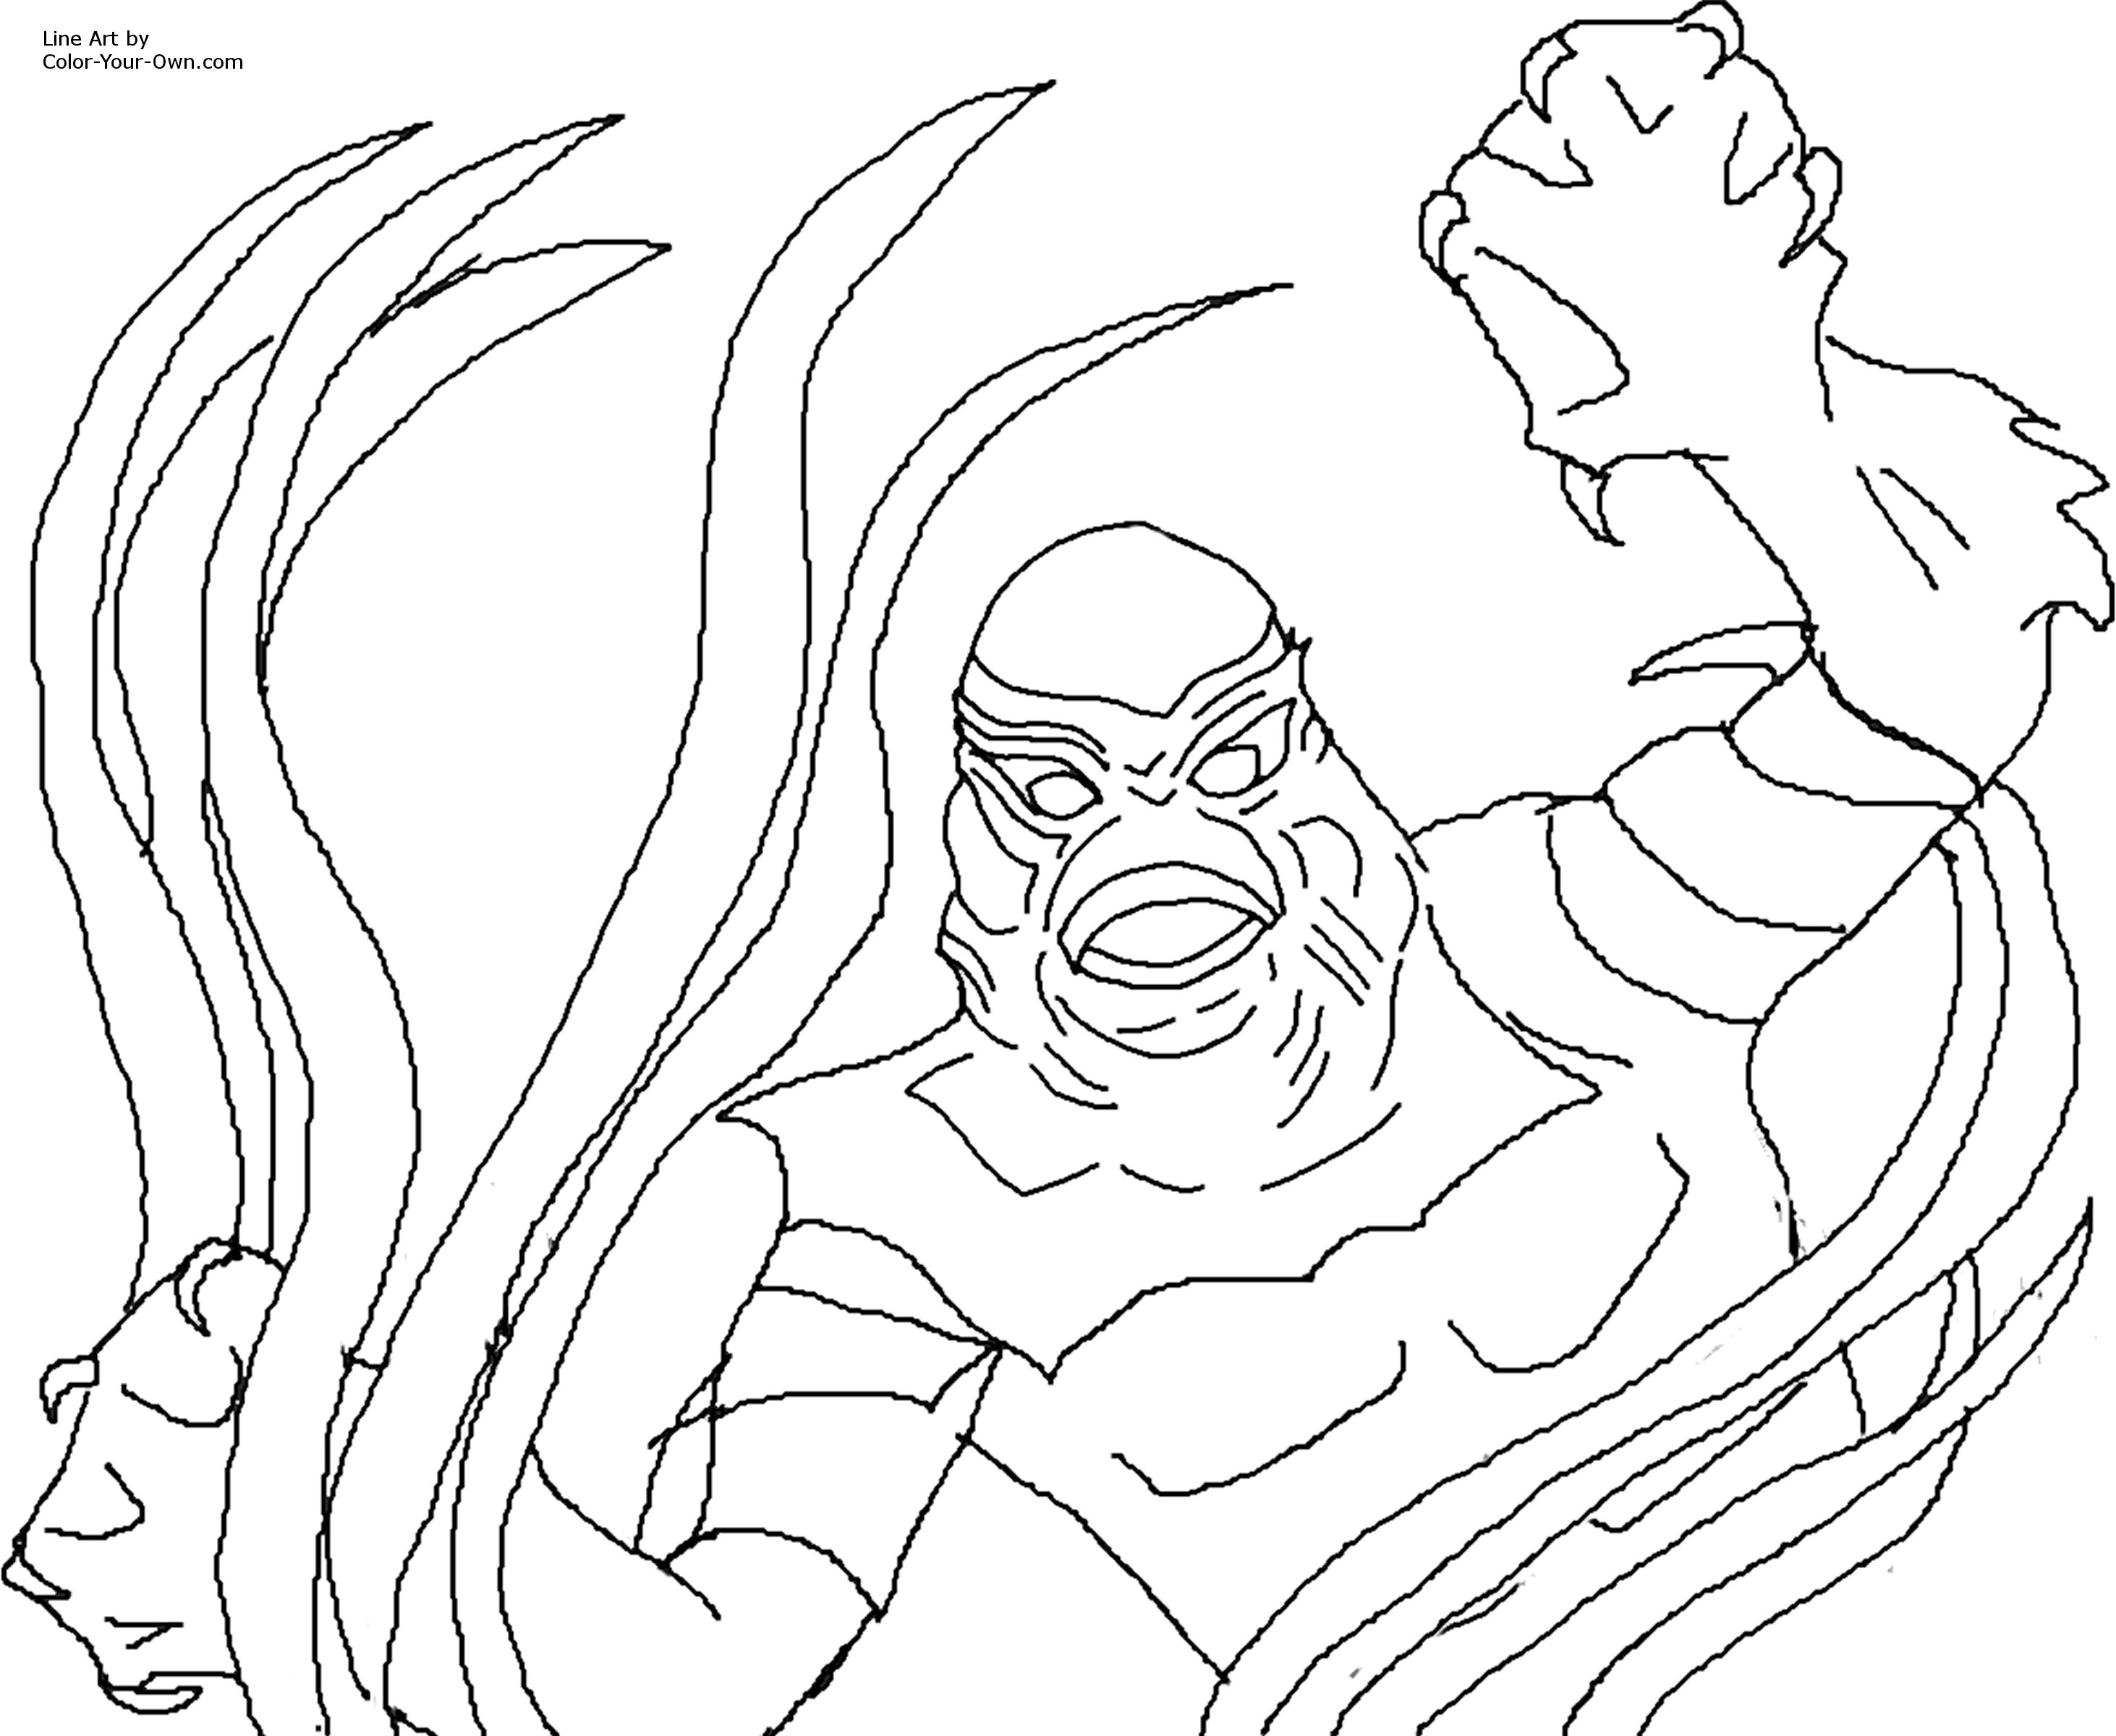 Classic monster movie creature of the black lagoon for Creature from the black lagoon coloring pages